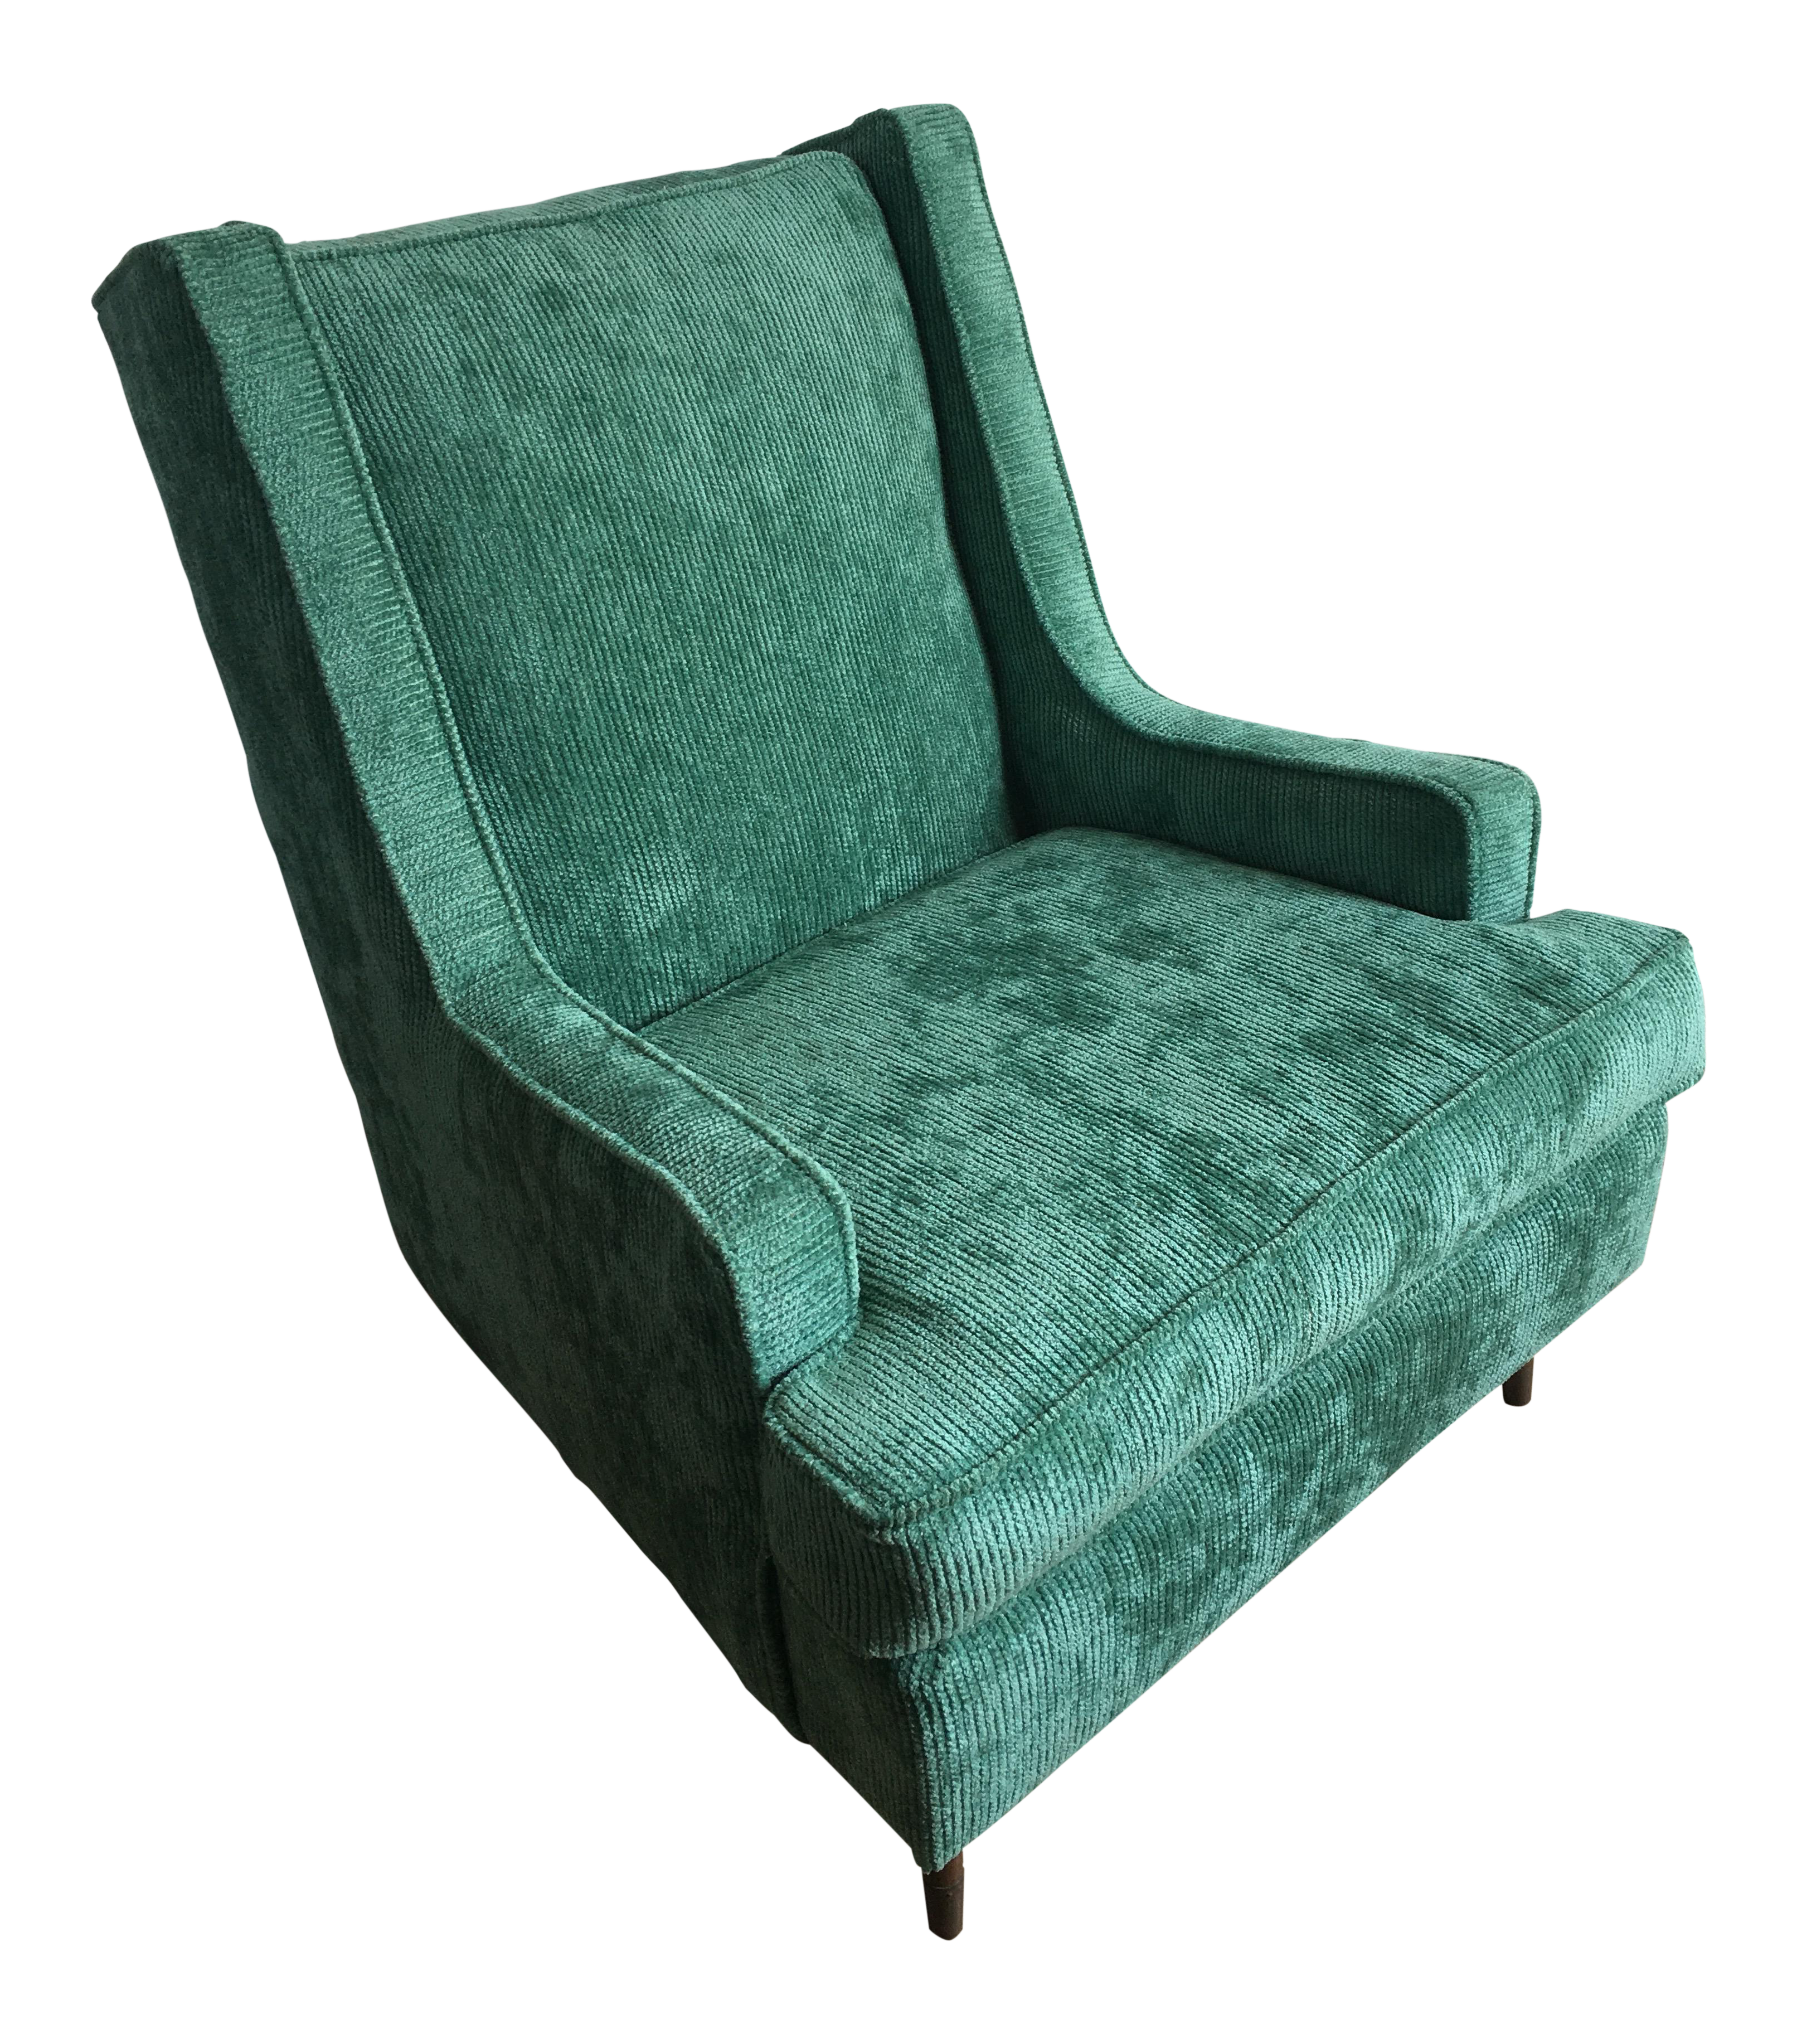 Vintage Mid Century Modern Upholstered Accent Chair With Tapered